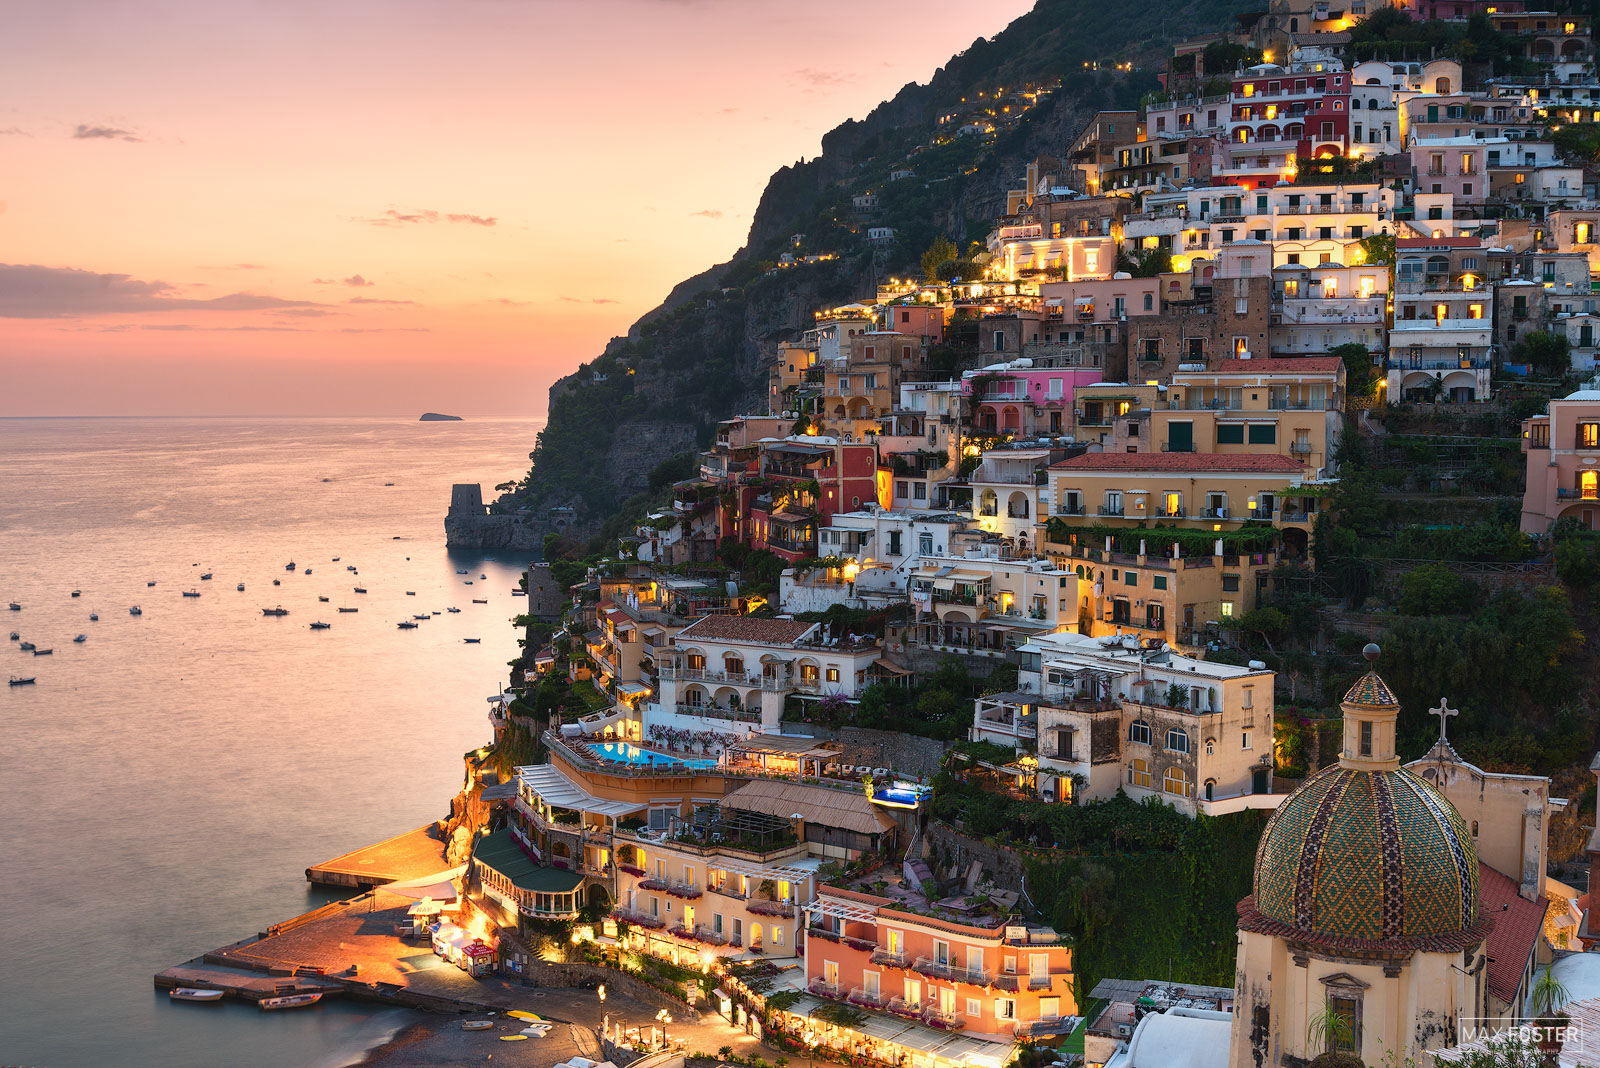 Amalfi Coast, Italy, Sparkling Positano, Village, Campania, Resort, Holiday, Villa, Hills, Positano Skyline, photo